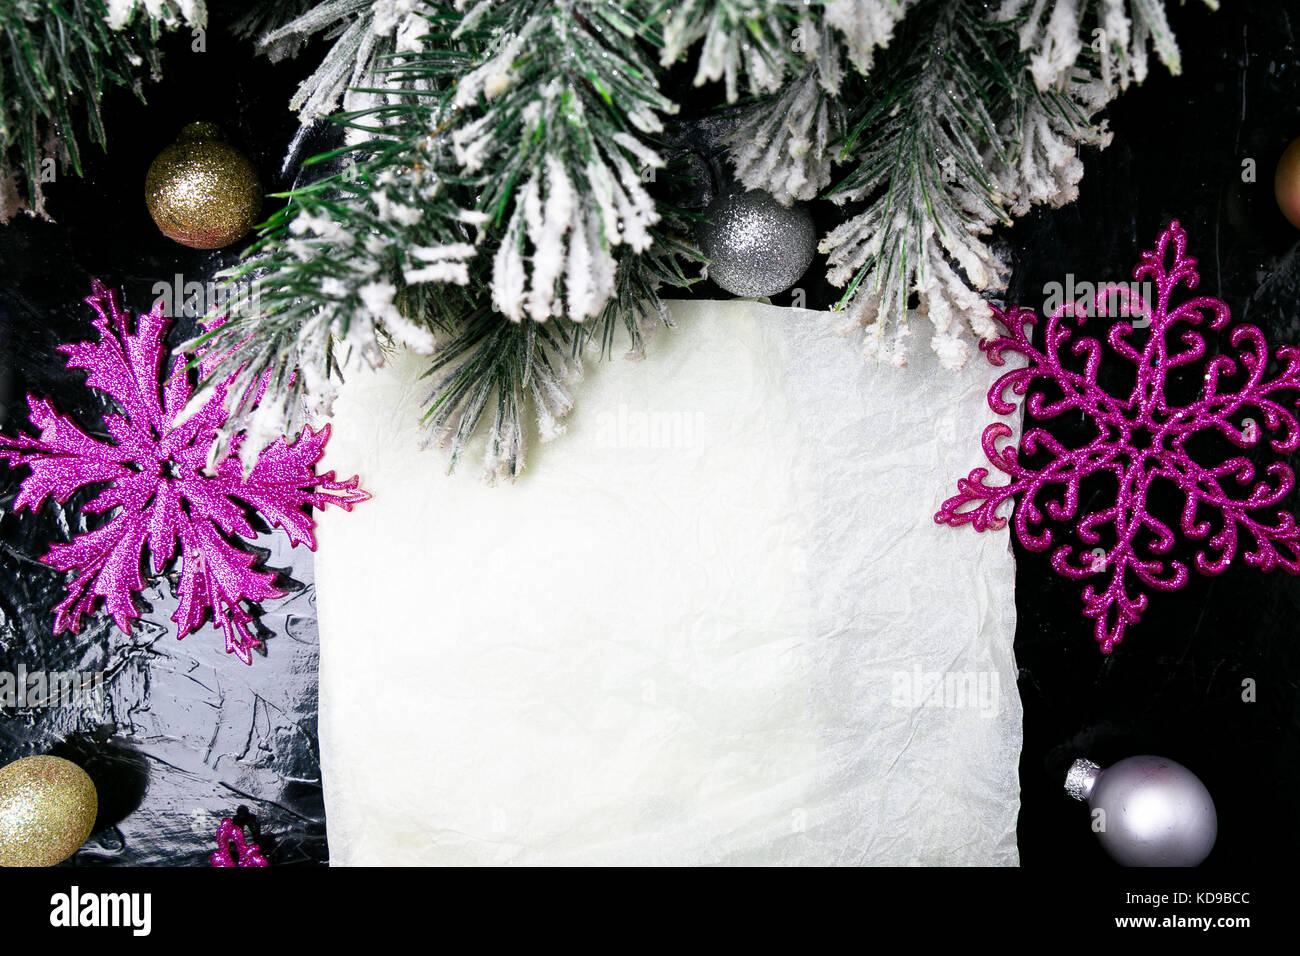 Decorative Snowflake White And Pink On Black Background Christmas Stock Photo Alamy